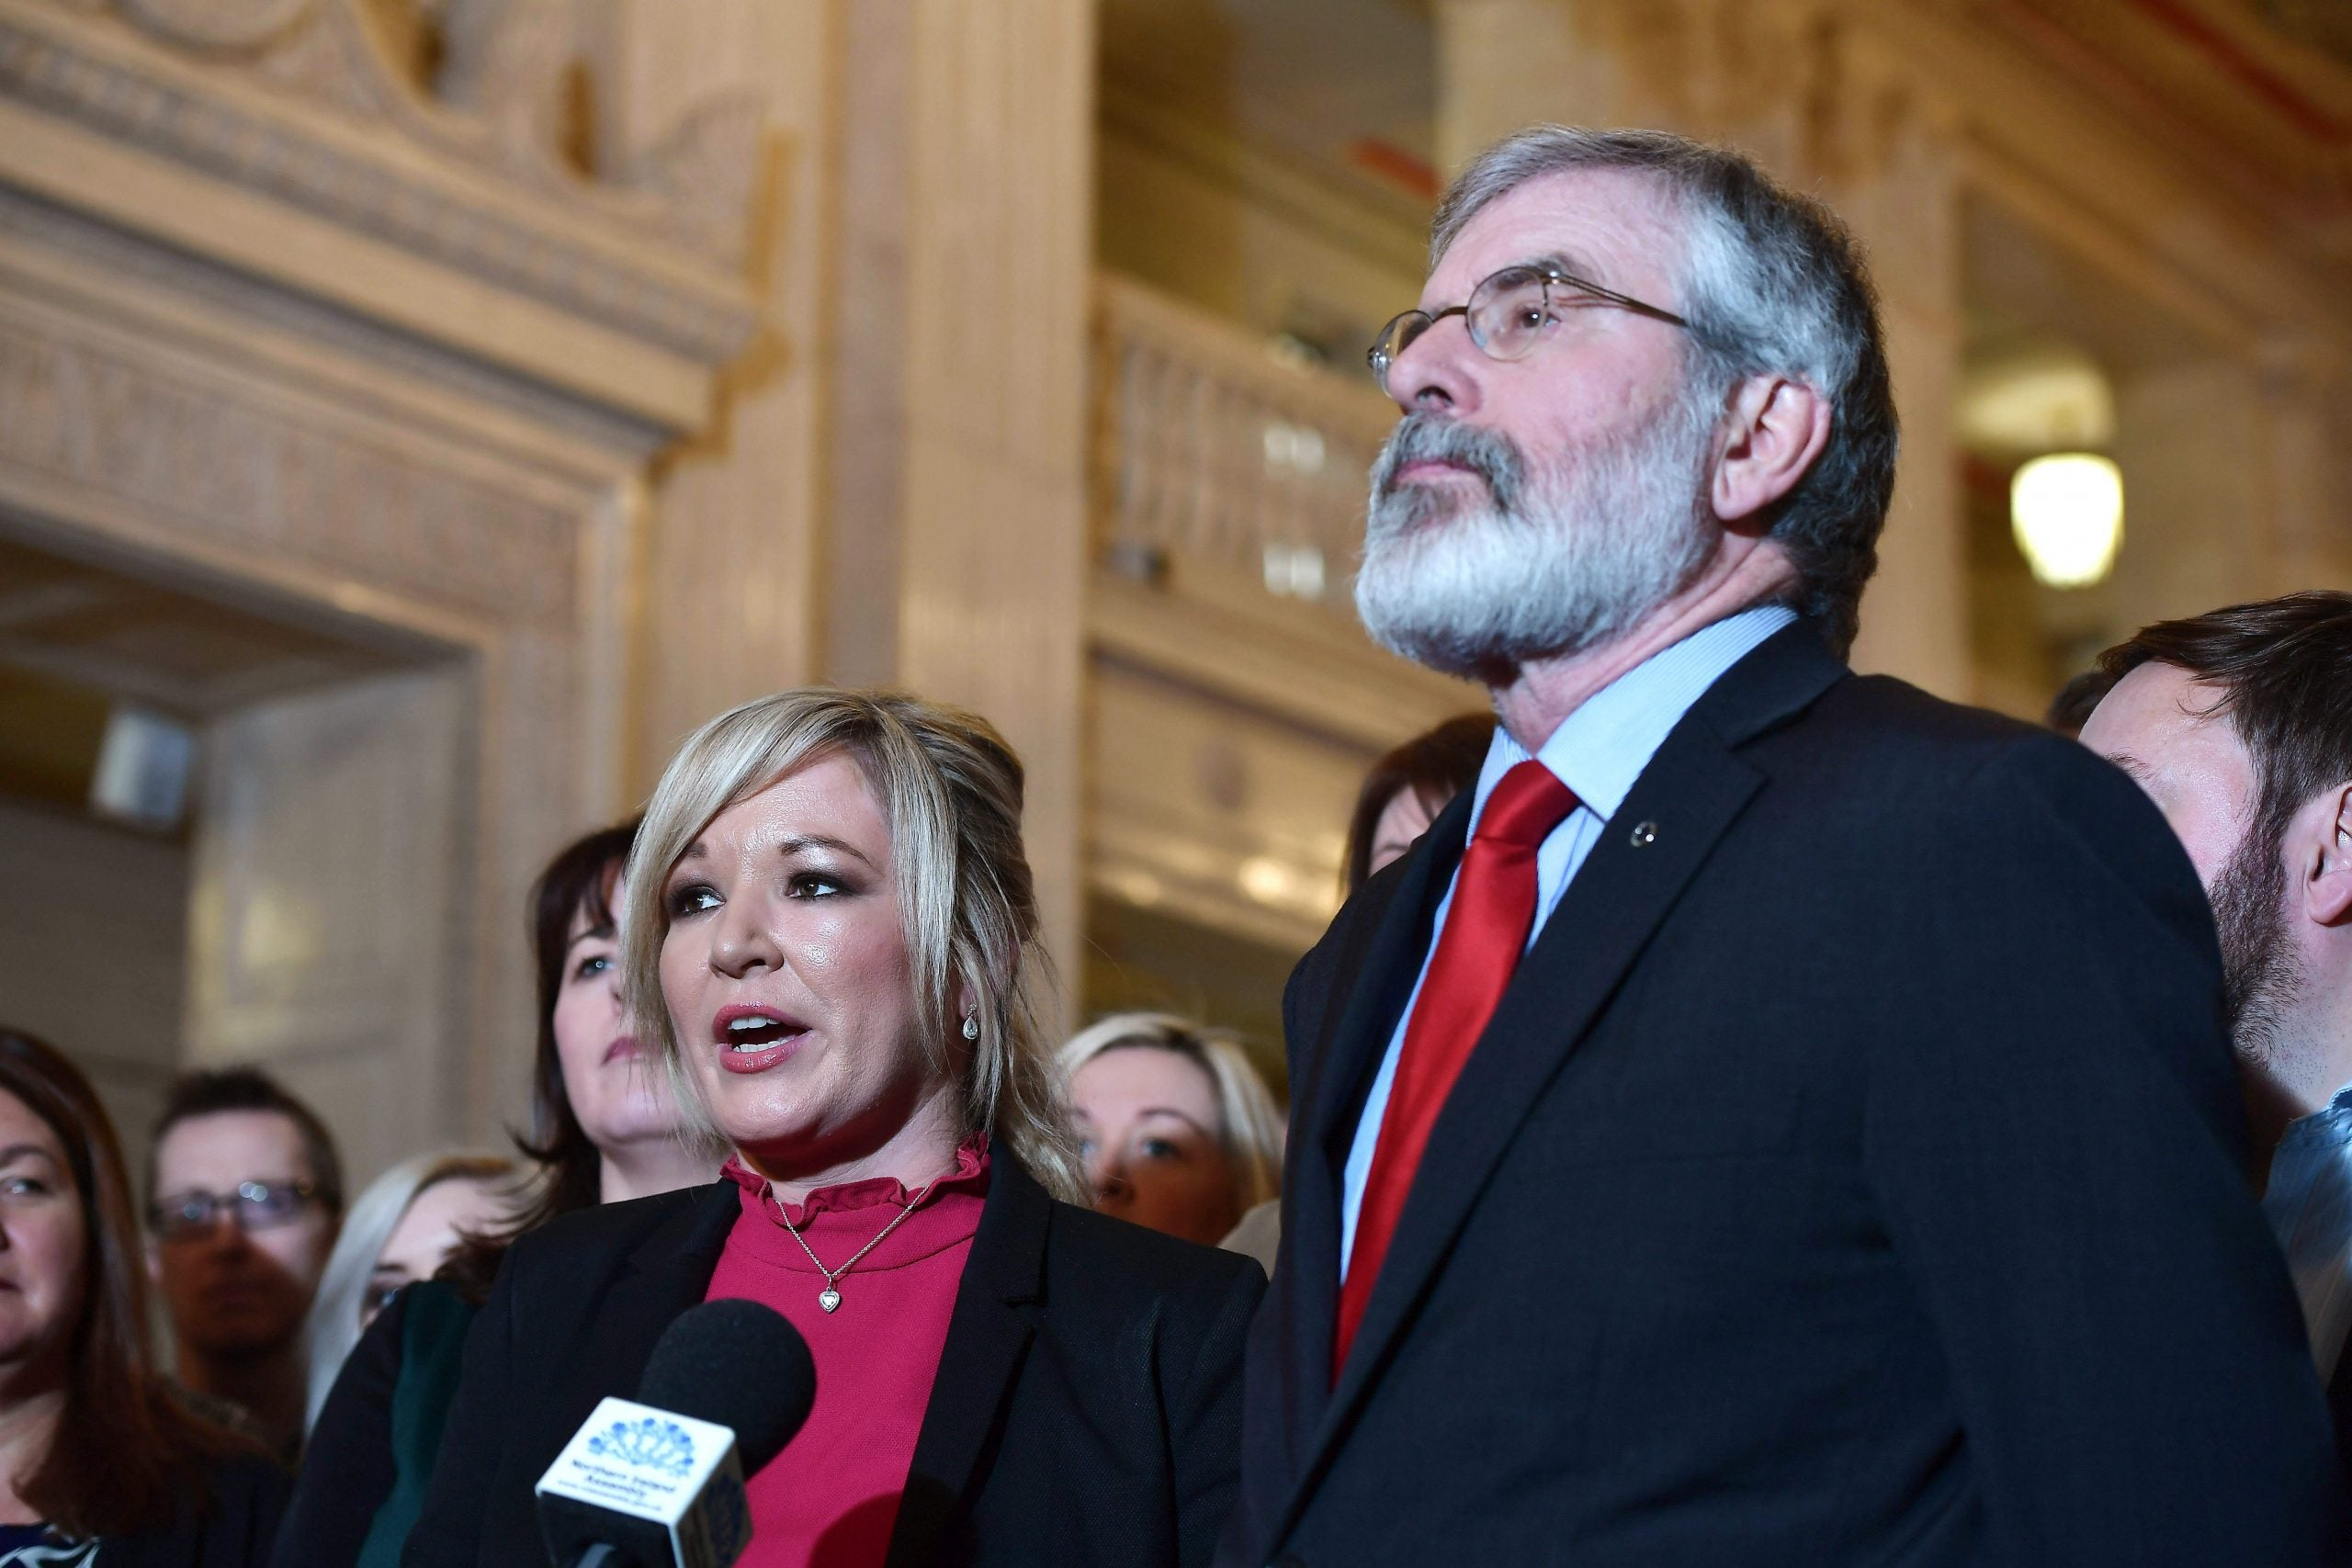 Election 2017: Why Sinn Féin could end up as Northern Ireland's largest party